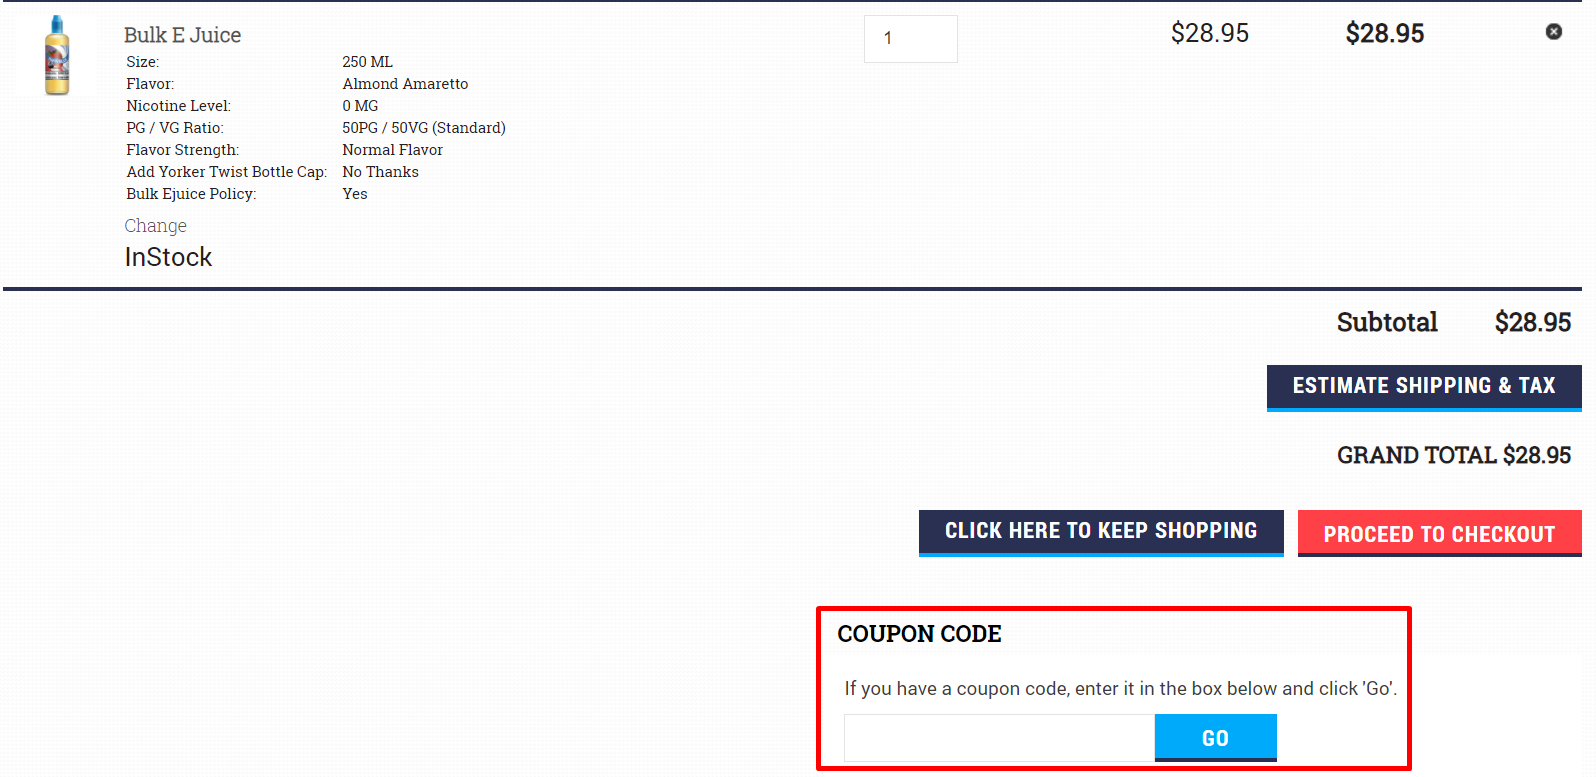 How do I use my Central Vapors coupon code?